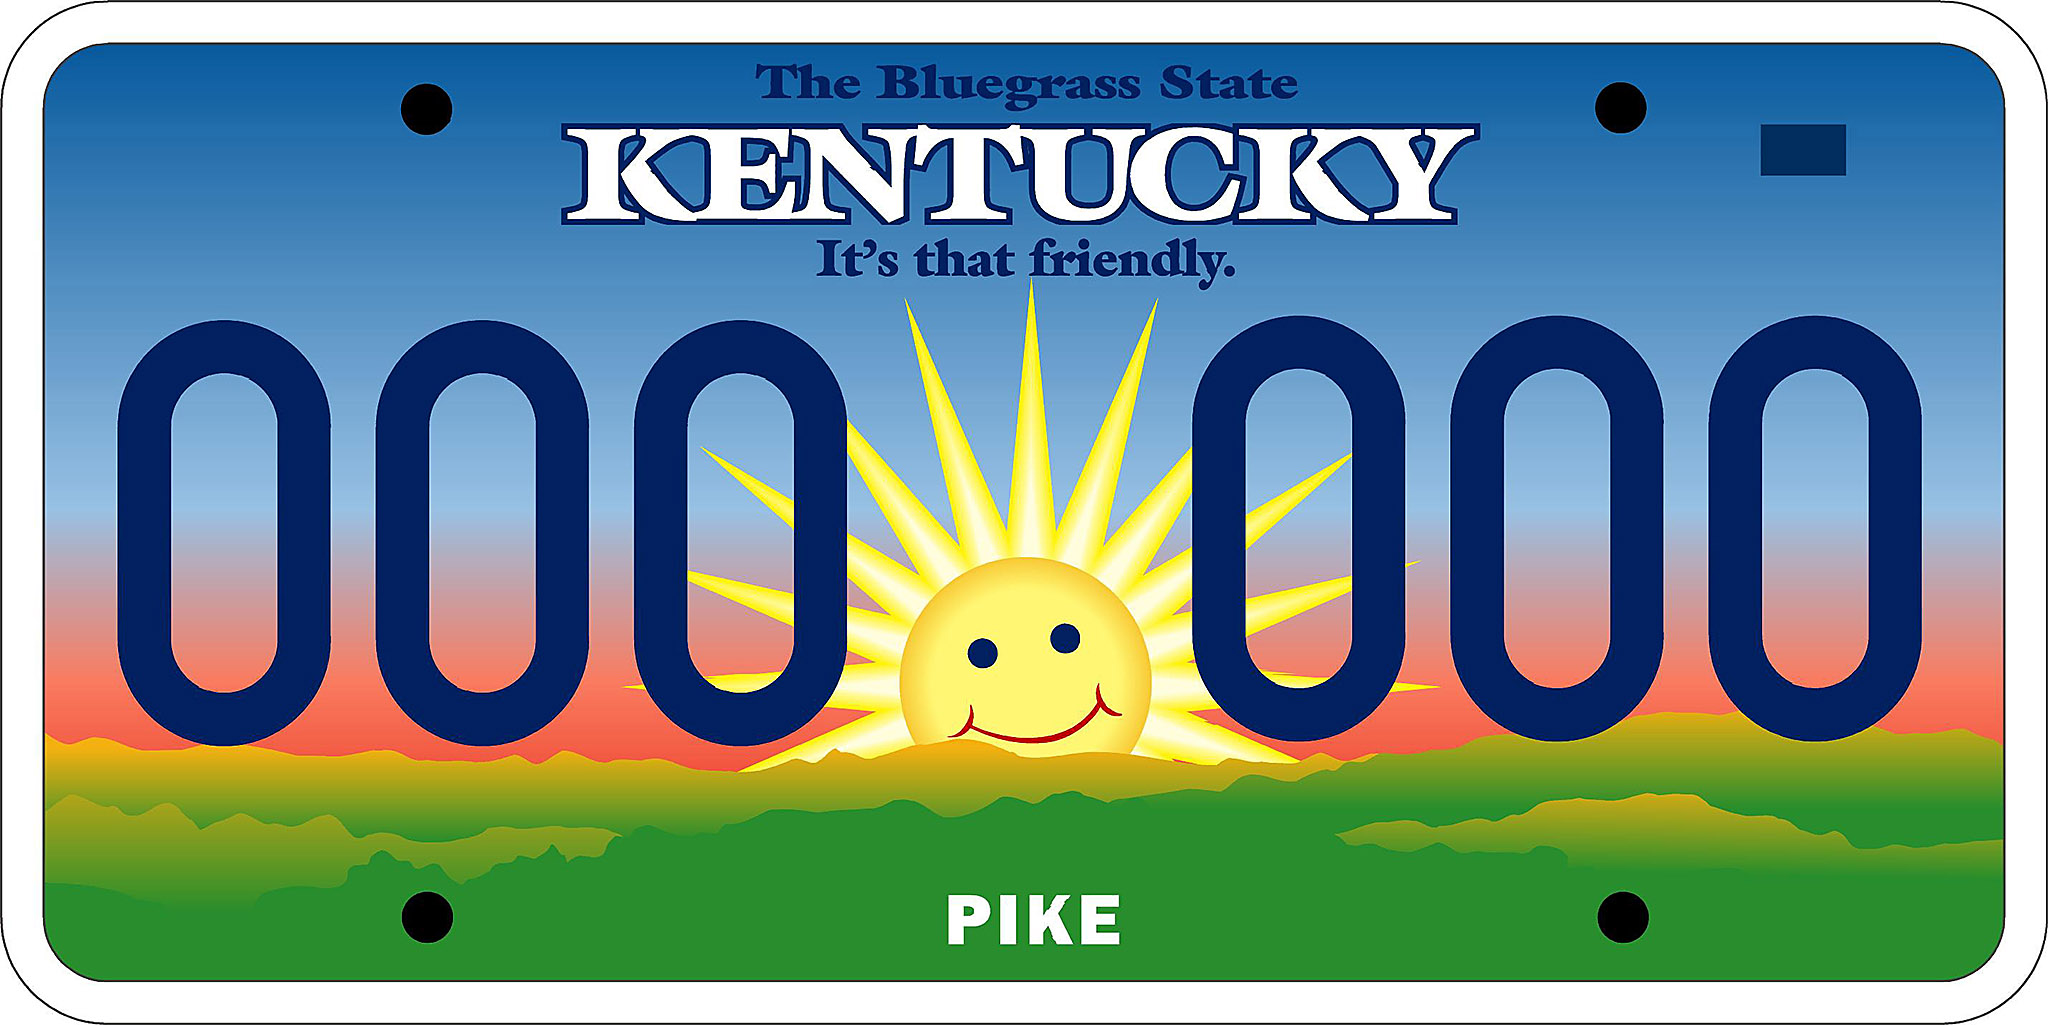 2048x1025 Mr. Smiley License Plate, 2002 Kentucky Photo Archive